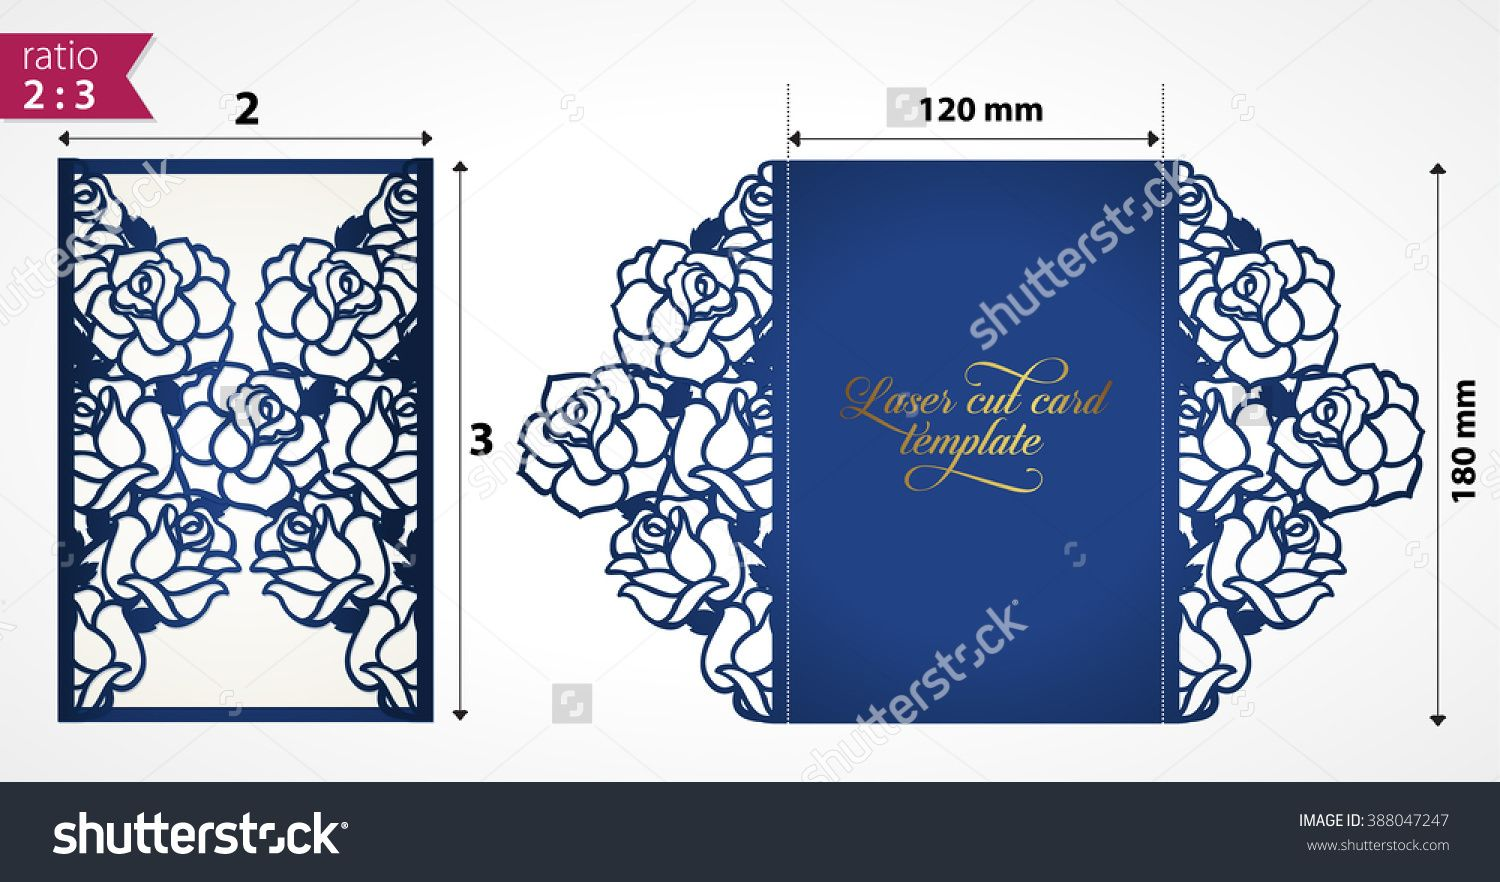 Laser cut wedding invitation template with roses vector floral die laser cut wedding invitation template with roses vector floral die cut card mock up cutout paper card with rose flowers laser cut design stopboris Images